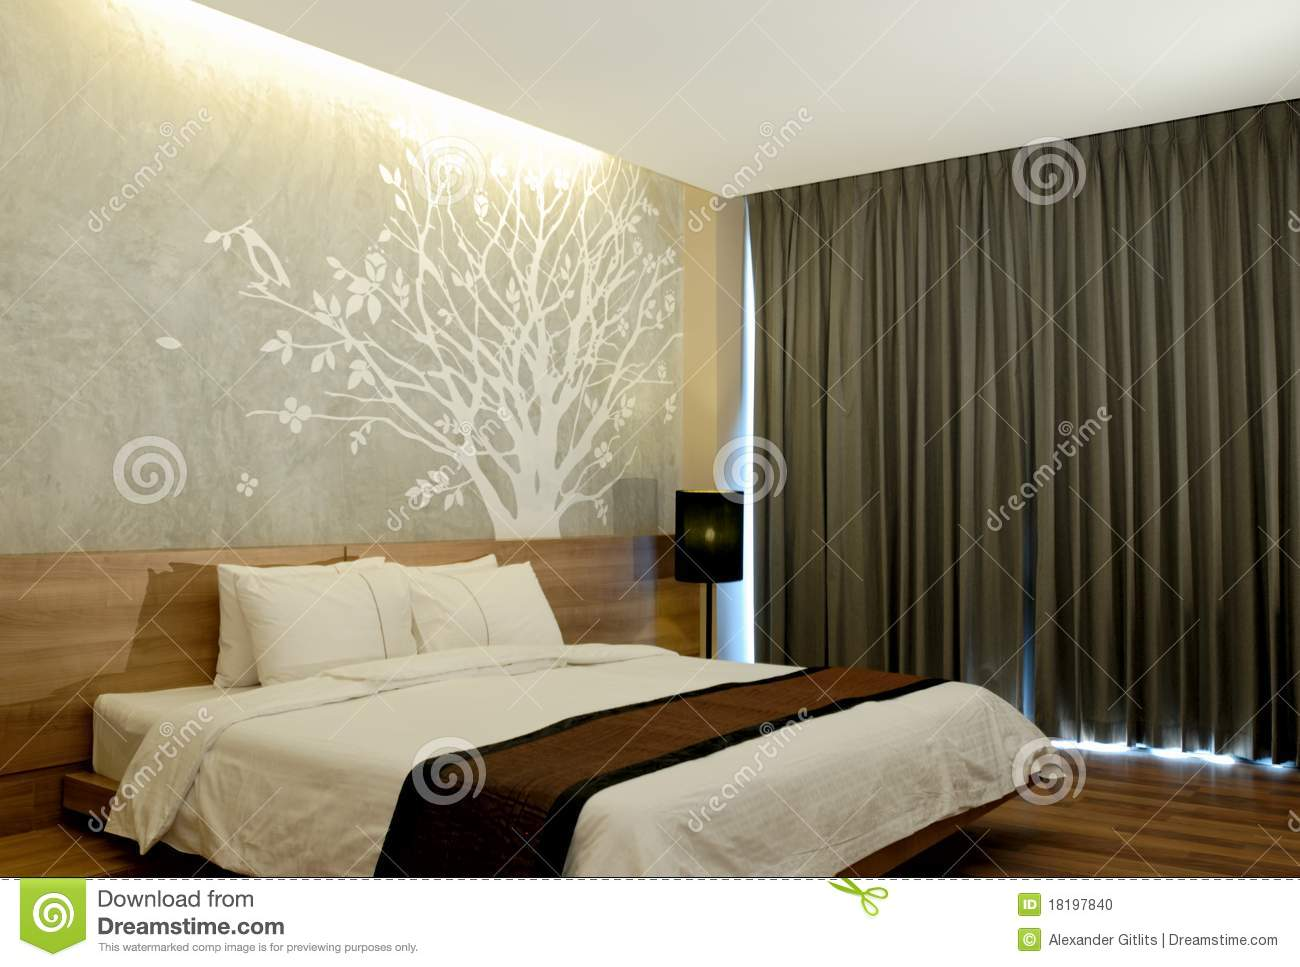 Modern Hotel Room Interior Stock Photo. Image Of Luxury